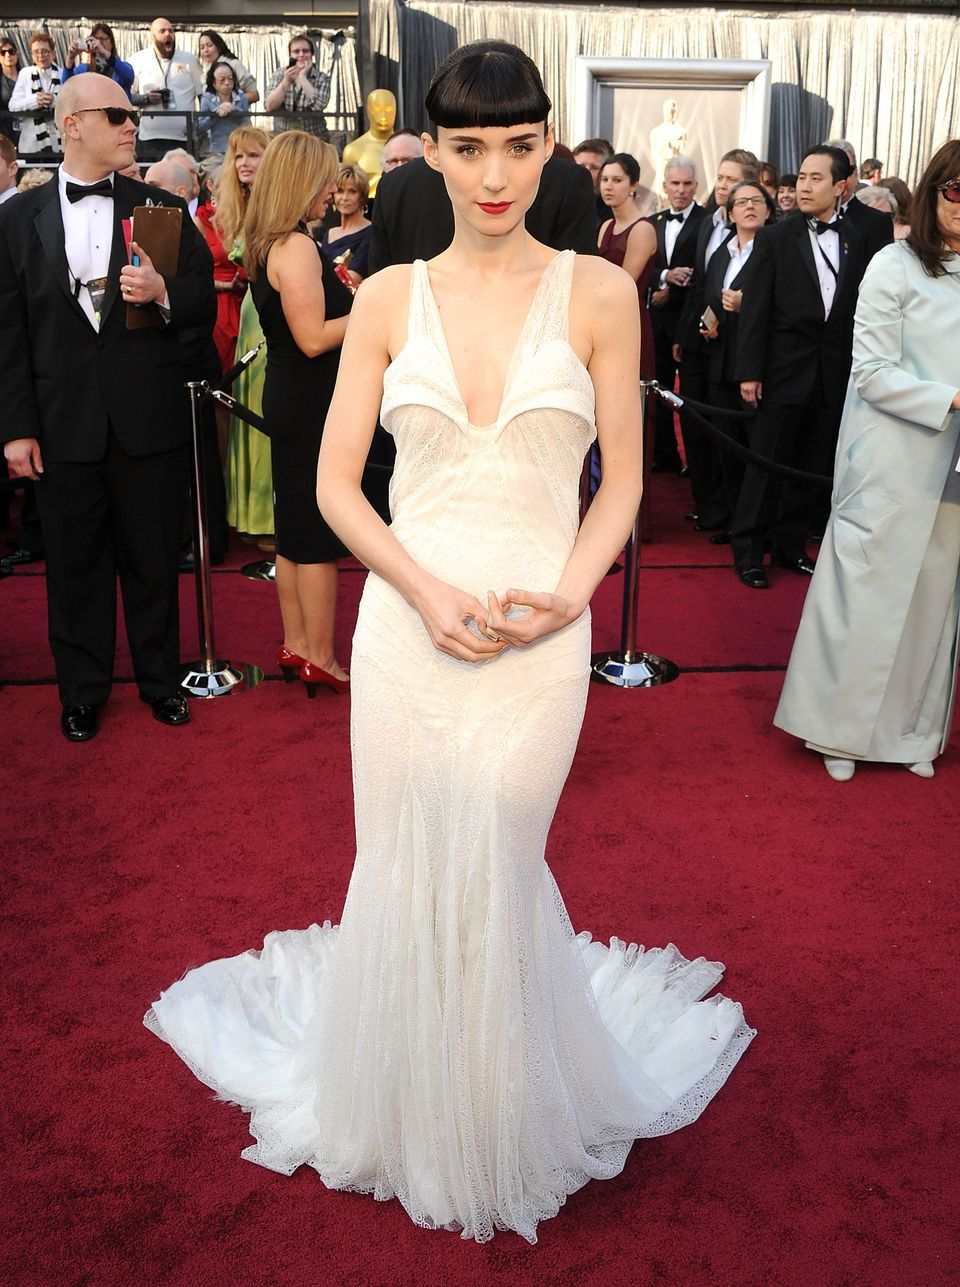 Rooney on the red carpet at the 84th Academy Awards show where she was nominated for Best Actress for...